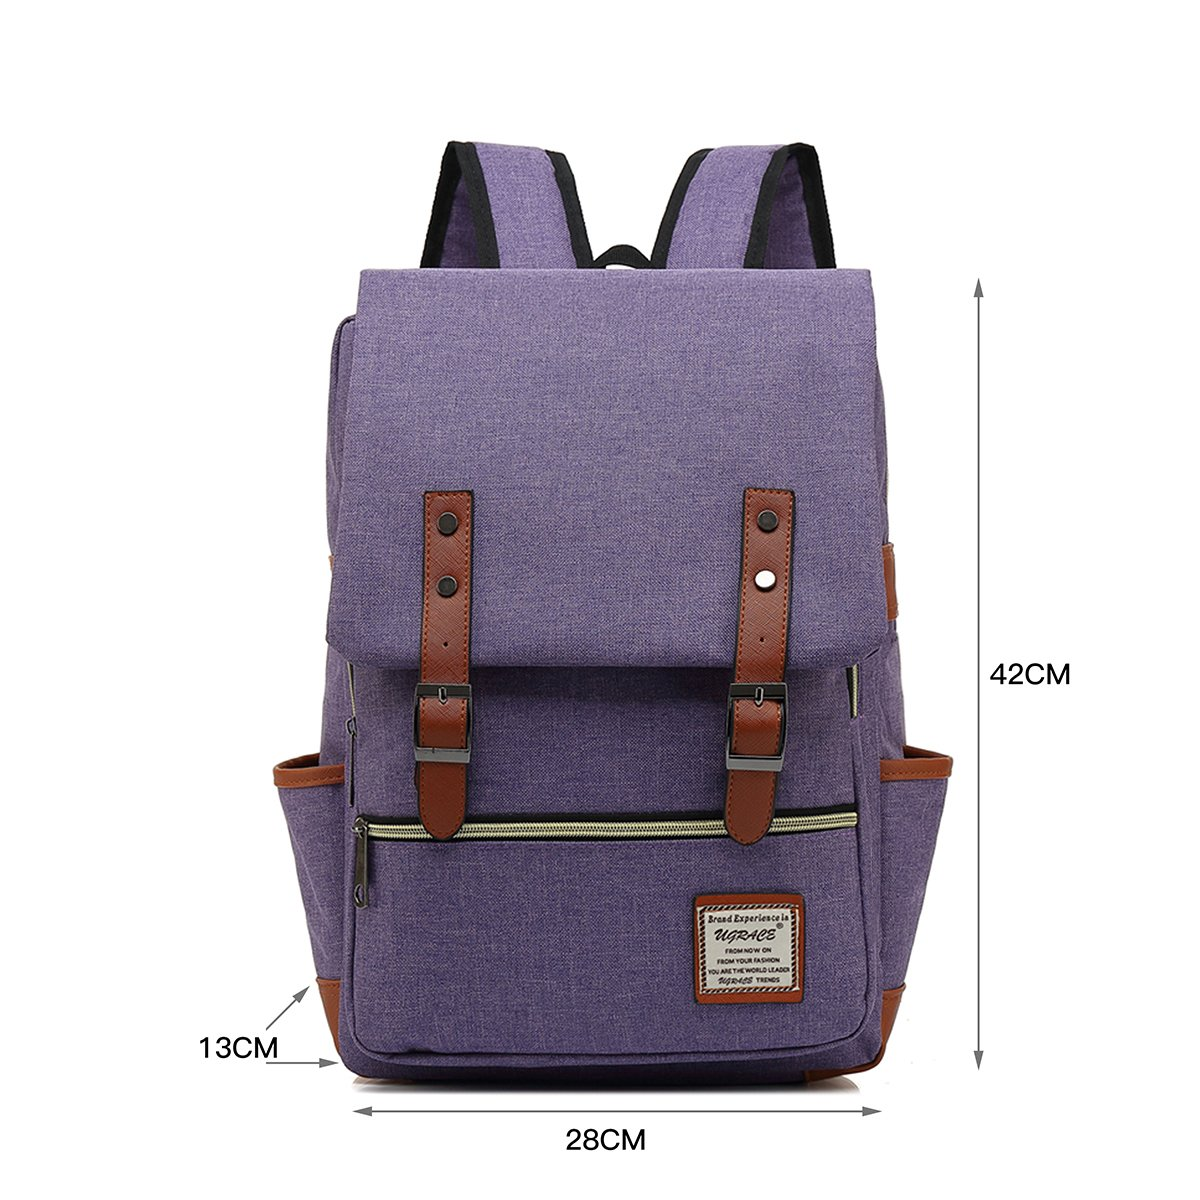 UGRACE Slim Business Laptop Backpack Elegant Casual Daypacks Outdoor Sports Rucksack School Shoulder Bag for Men Women, Tear Resistant Unique Travelling Backpack Fits up to 15.6Inch Macbook in Violet by UGRACE (Image #2)